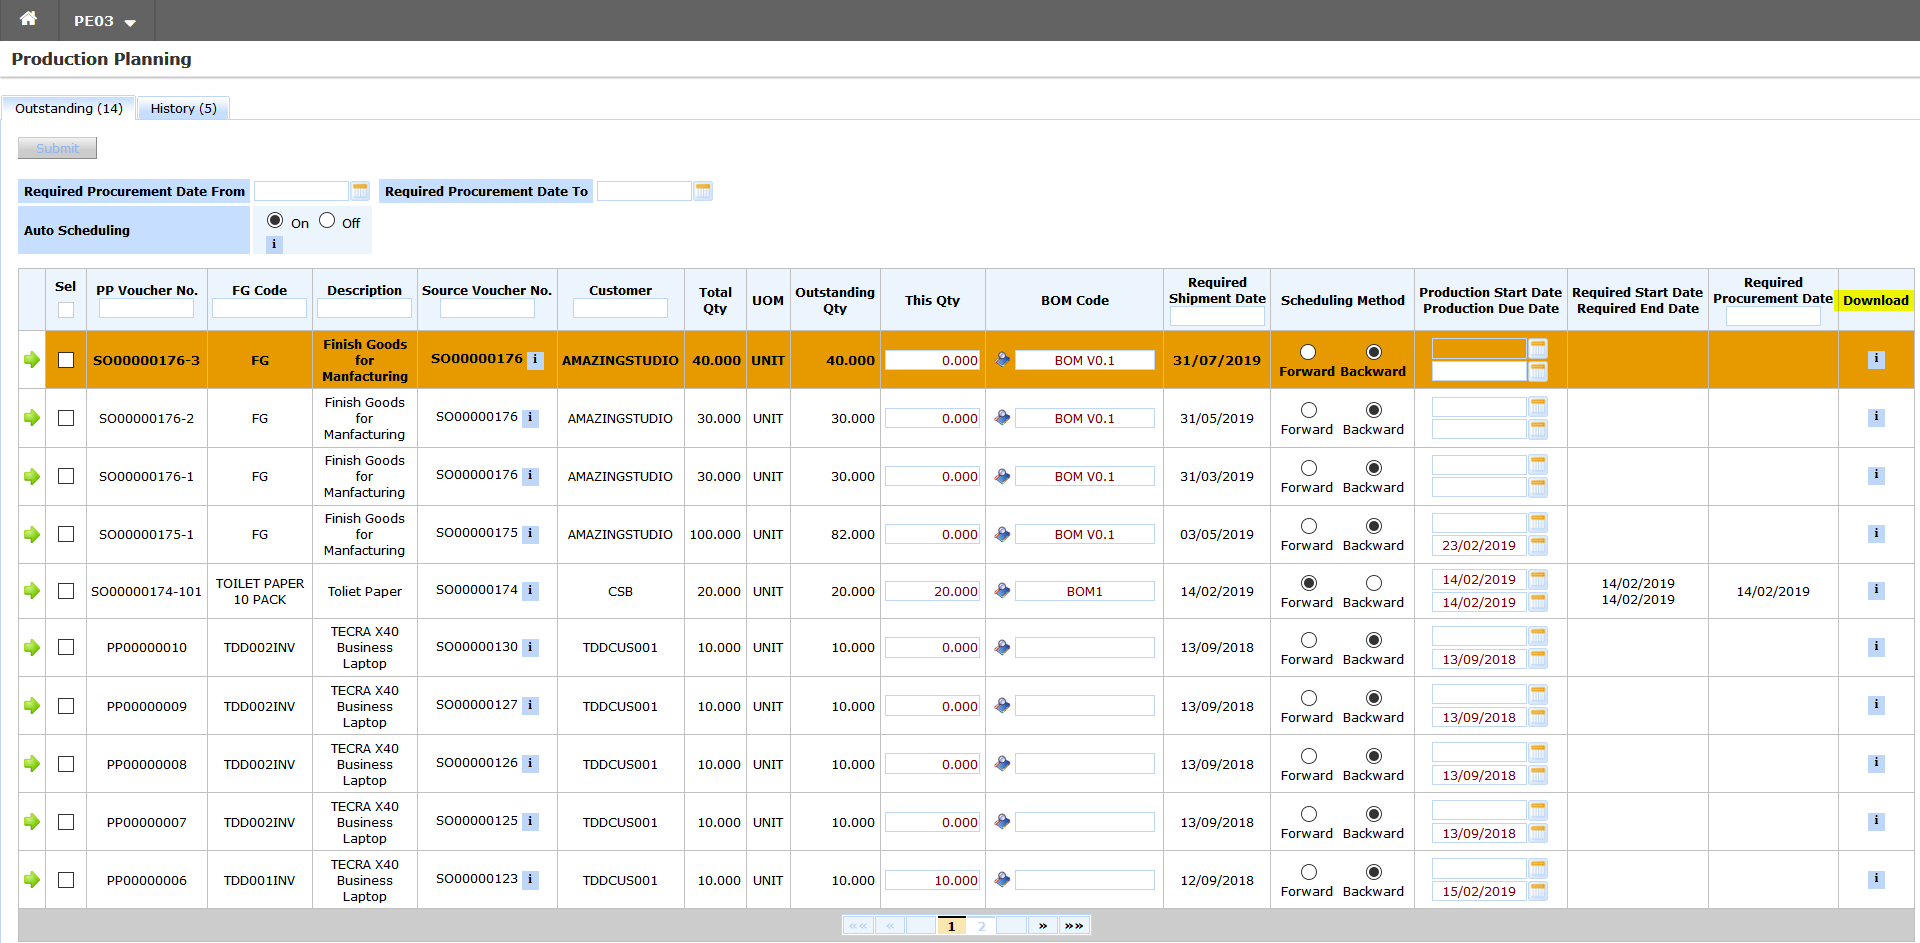 ERP System - View & Download Finished Goods Inventory Master Attachment(s) in Production Planning Screen